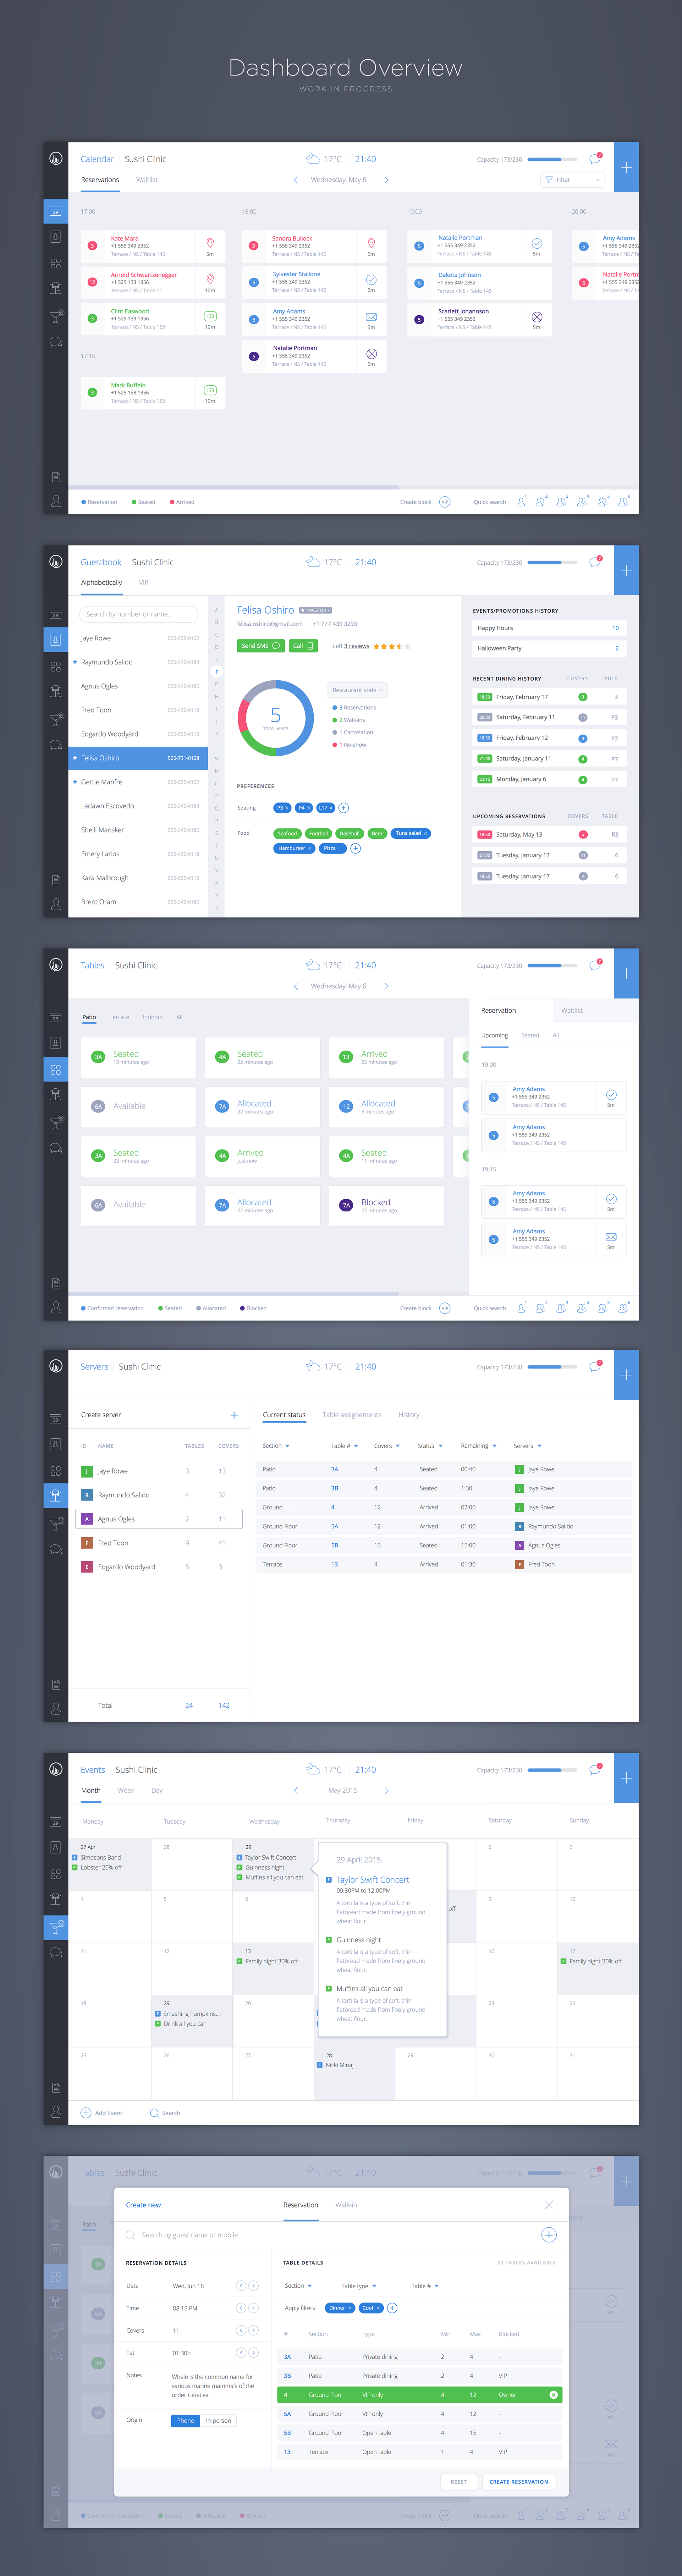 Dashboard full Make some easy money with this FREE web app --> http://bitcoinfaucetbonanza.com/ <-- Get Rich! #UI #Design